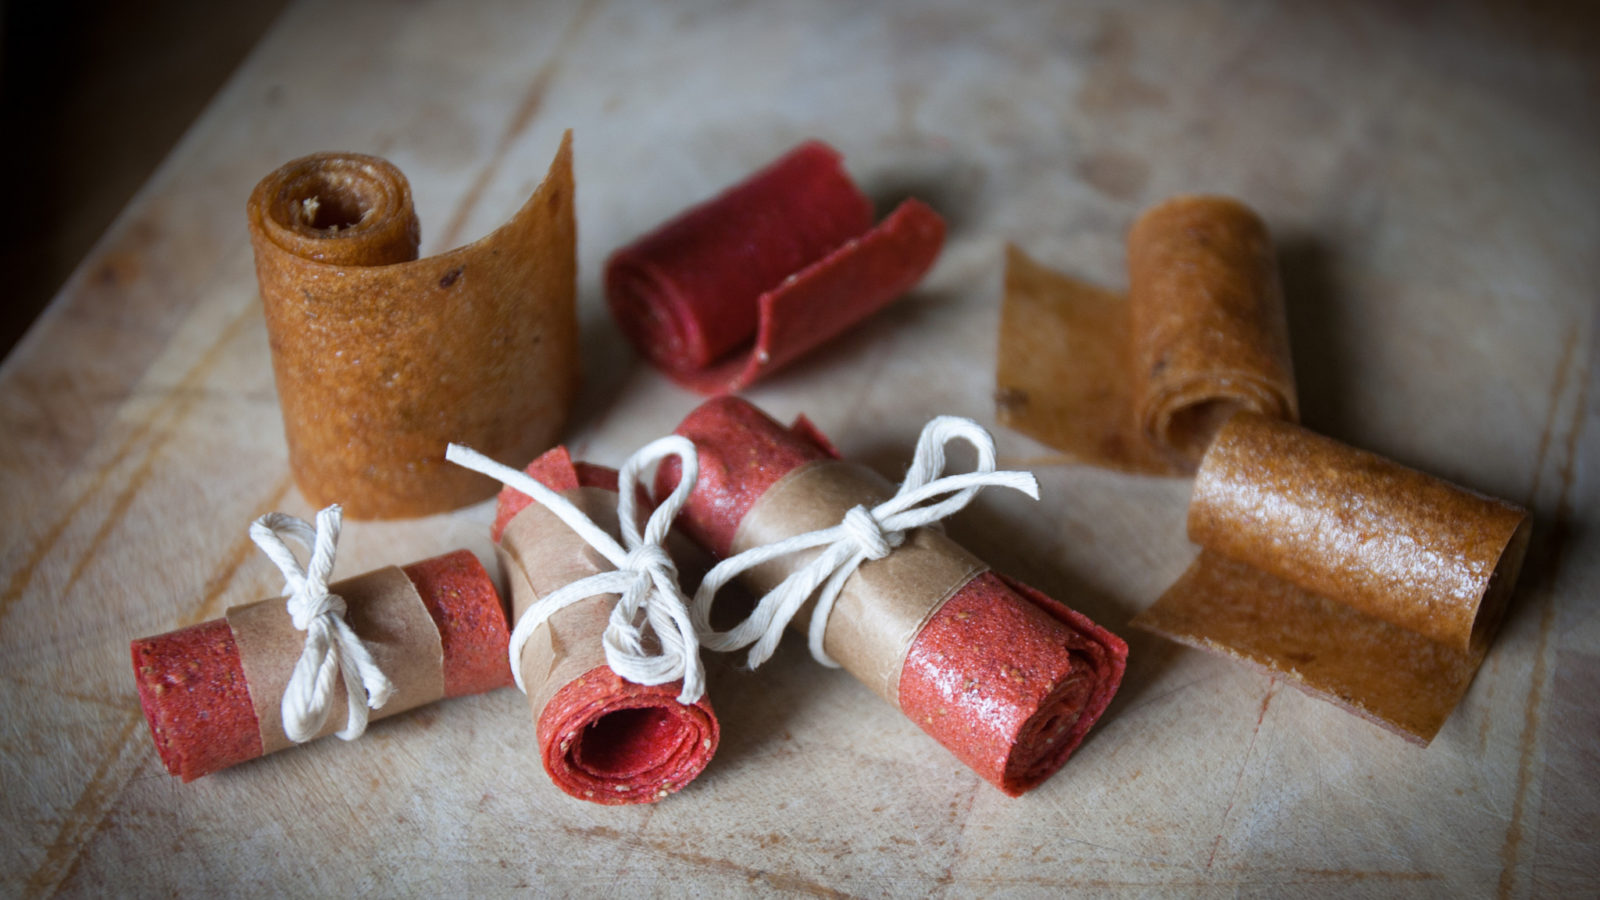 Homemade Fruit Leather - Make in the oven or dehydrator